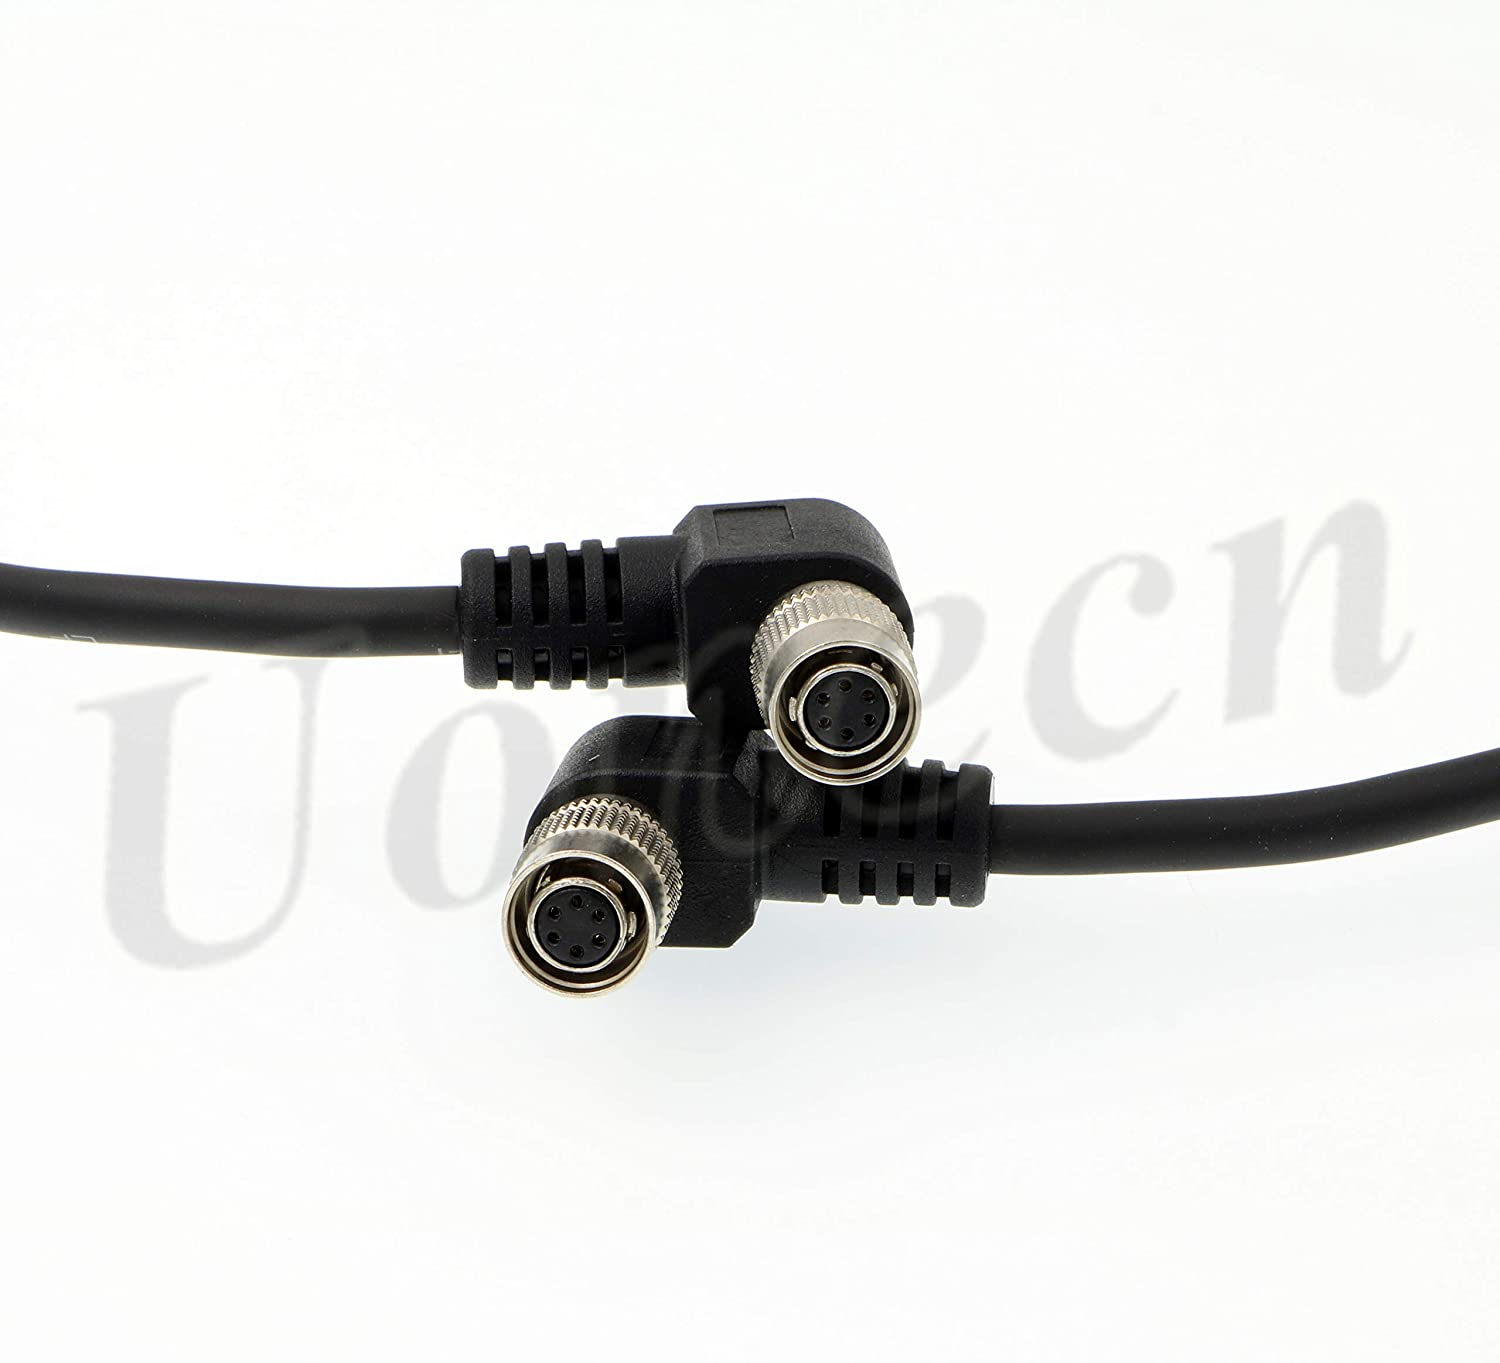 Uonecn Power Cable for Basler GIGE AVT CCD Camera Right Angle 6 pin Hirose Female to Right Angle 6 pin Female